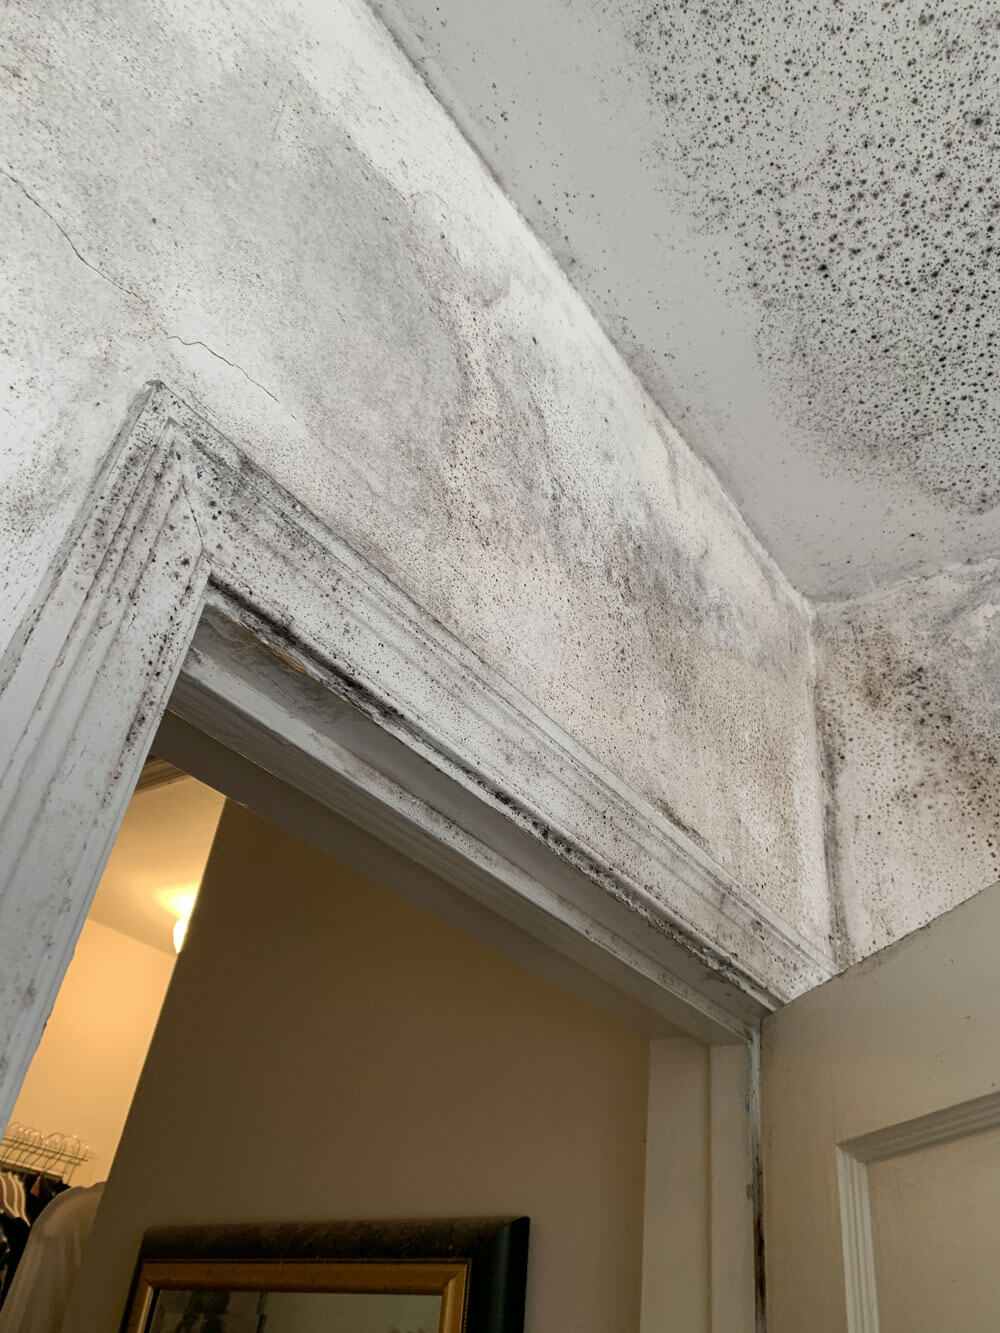 Mold on Walls and How to Remove It